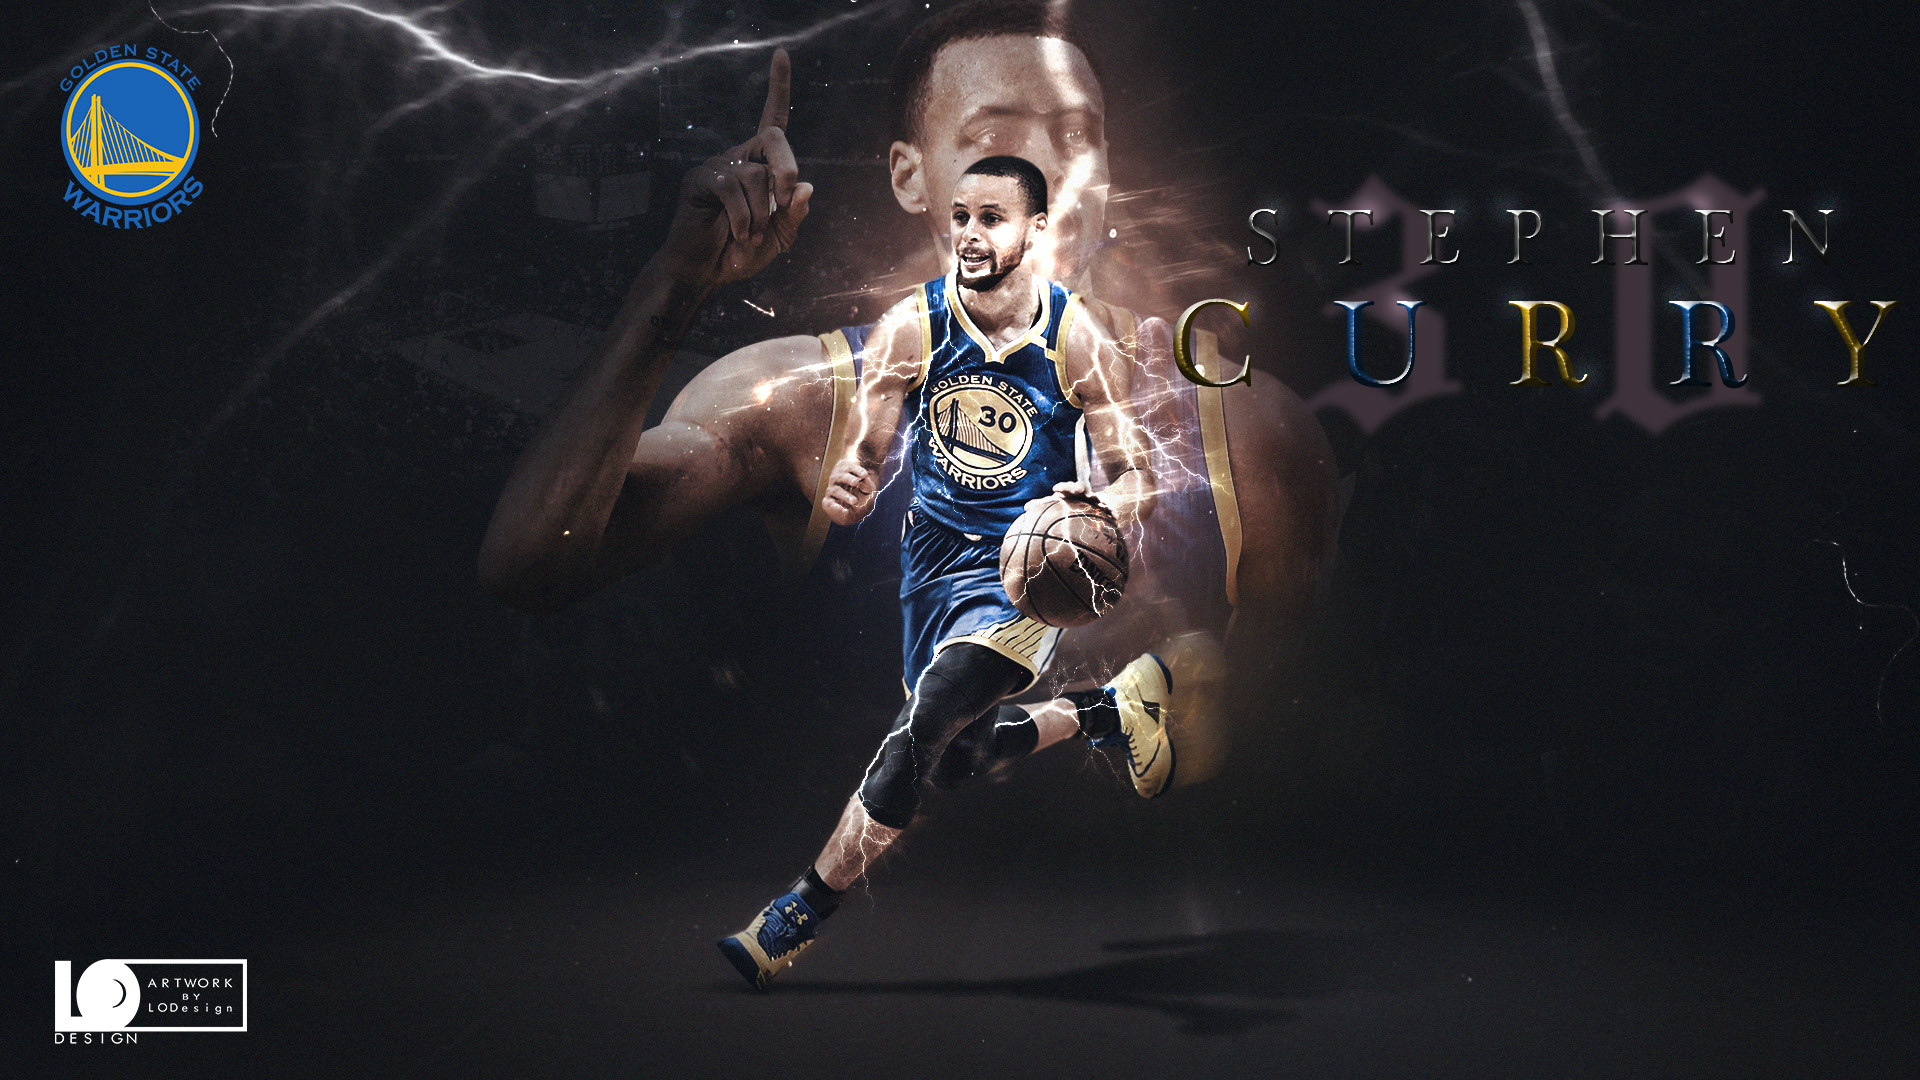 1920x1080 HD NBA Wallpaper Basketball Android Apps on Google Play